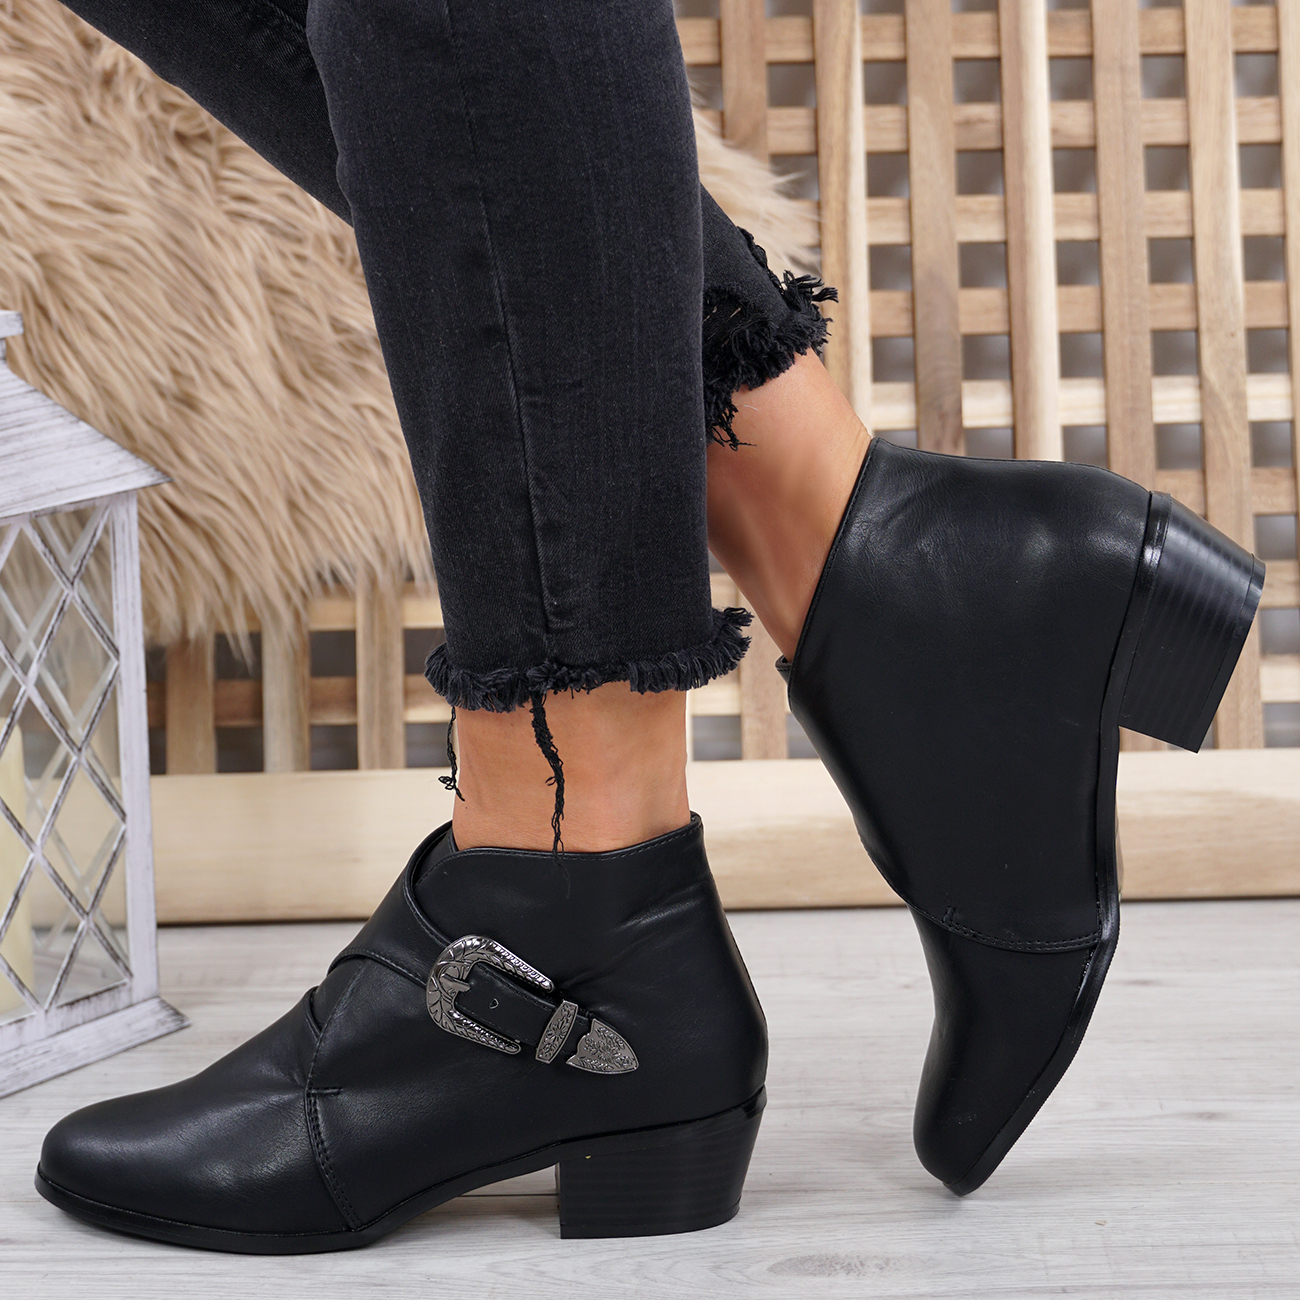 LADIES-WOMENS-PIXIE-ANKLE-BOOTS-BUCKLE-LOW-BLOCK-HEEL-CASUAL-SHOES-SIZE-UK